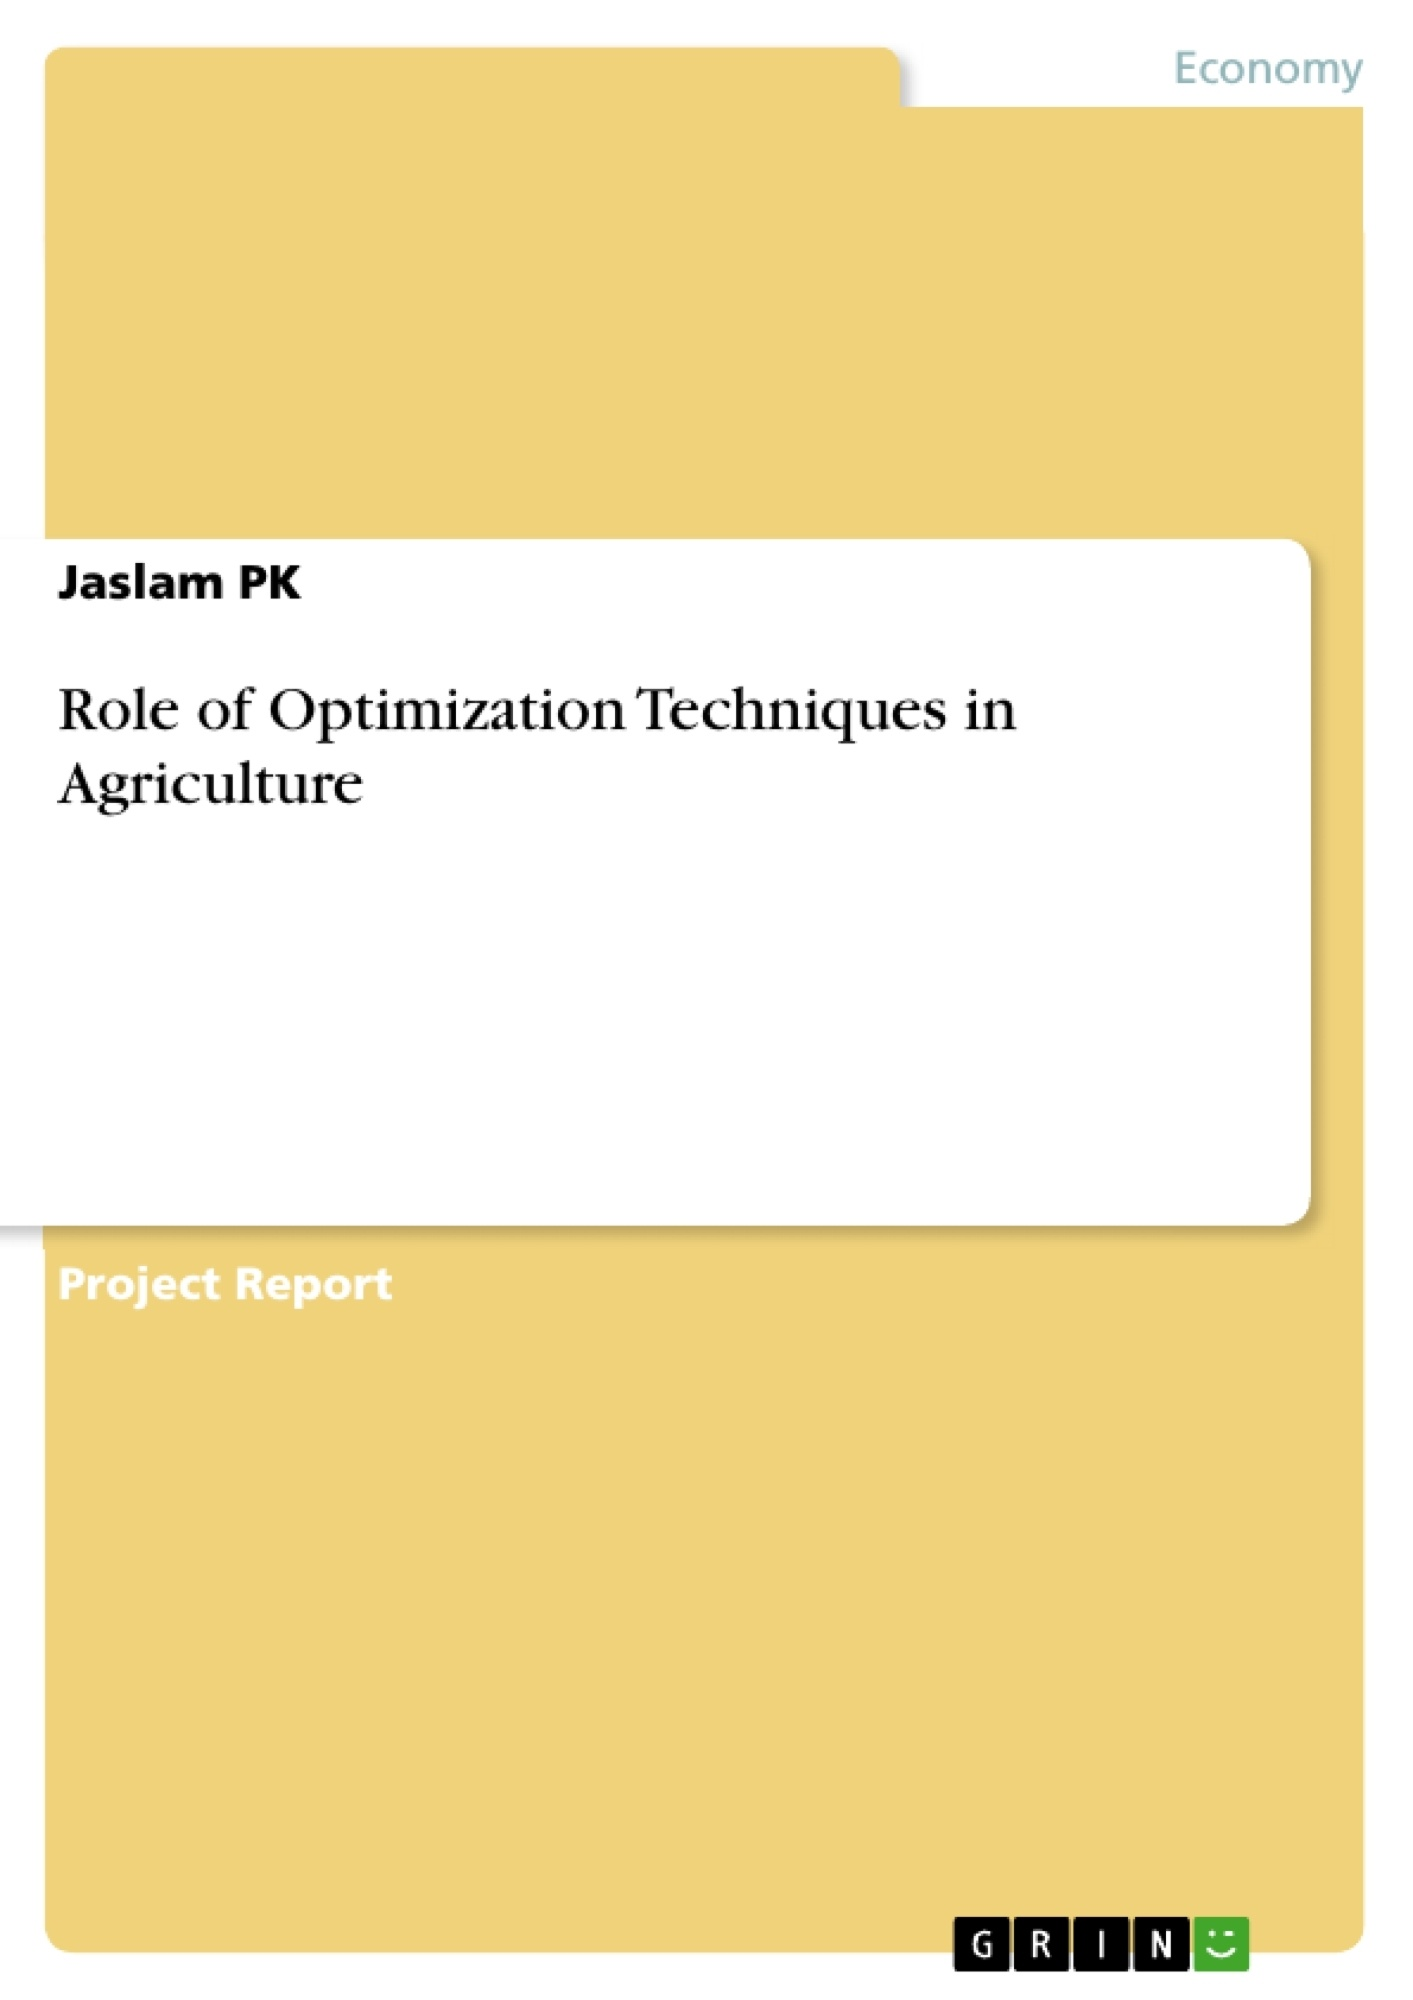 GRIN - Role of Optimization Techniques in Agriculture